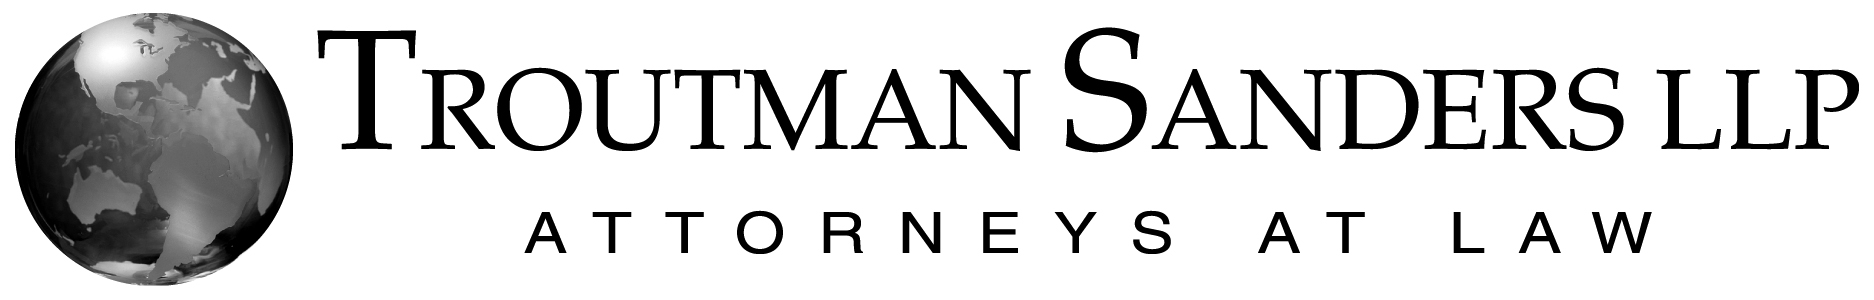 Two Troutman Sanders LLP Norfolk Attorneys Have Been Selected for Inclusion in The Best Lawyers in America 2015 Edition